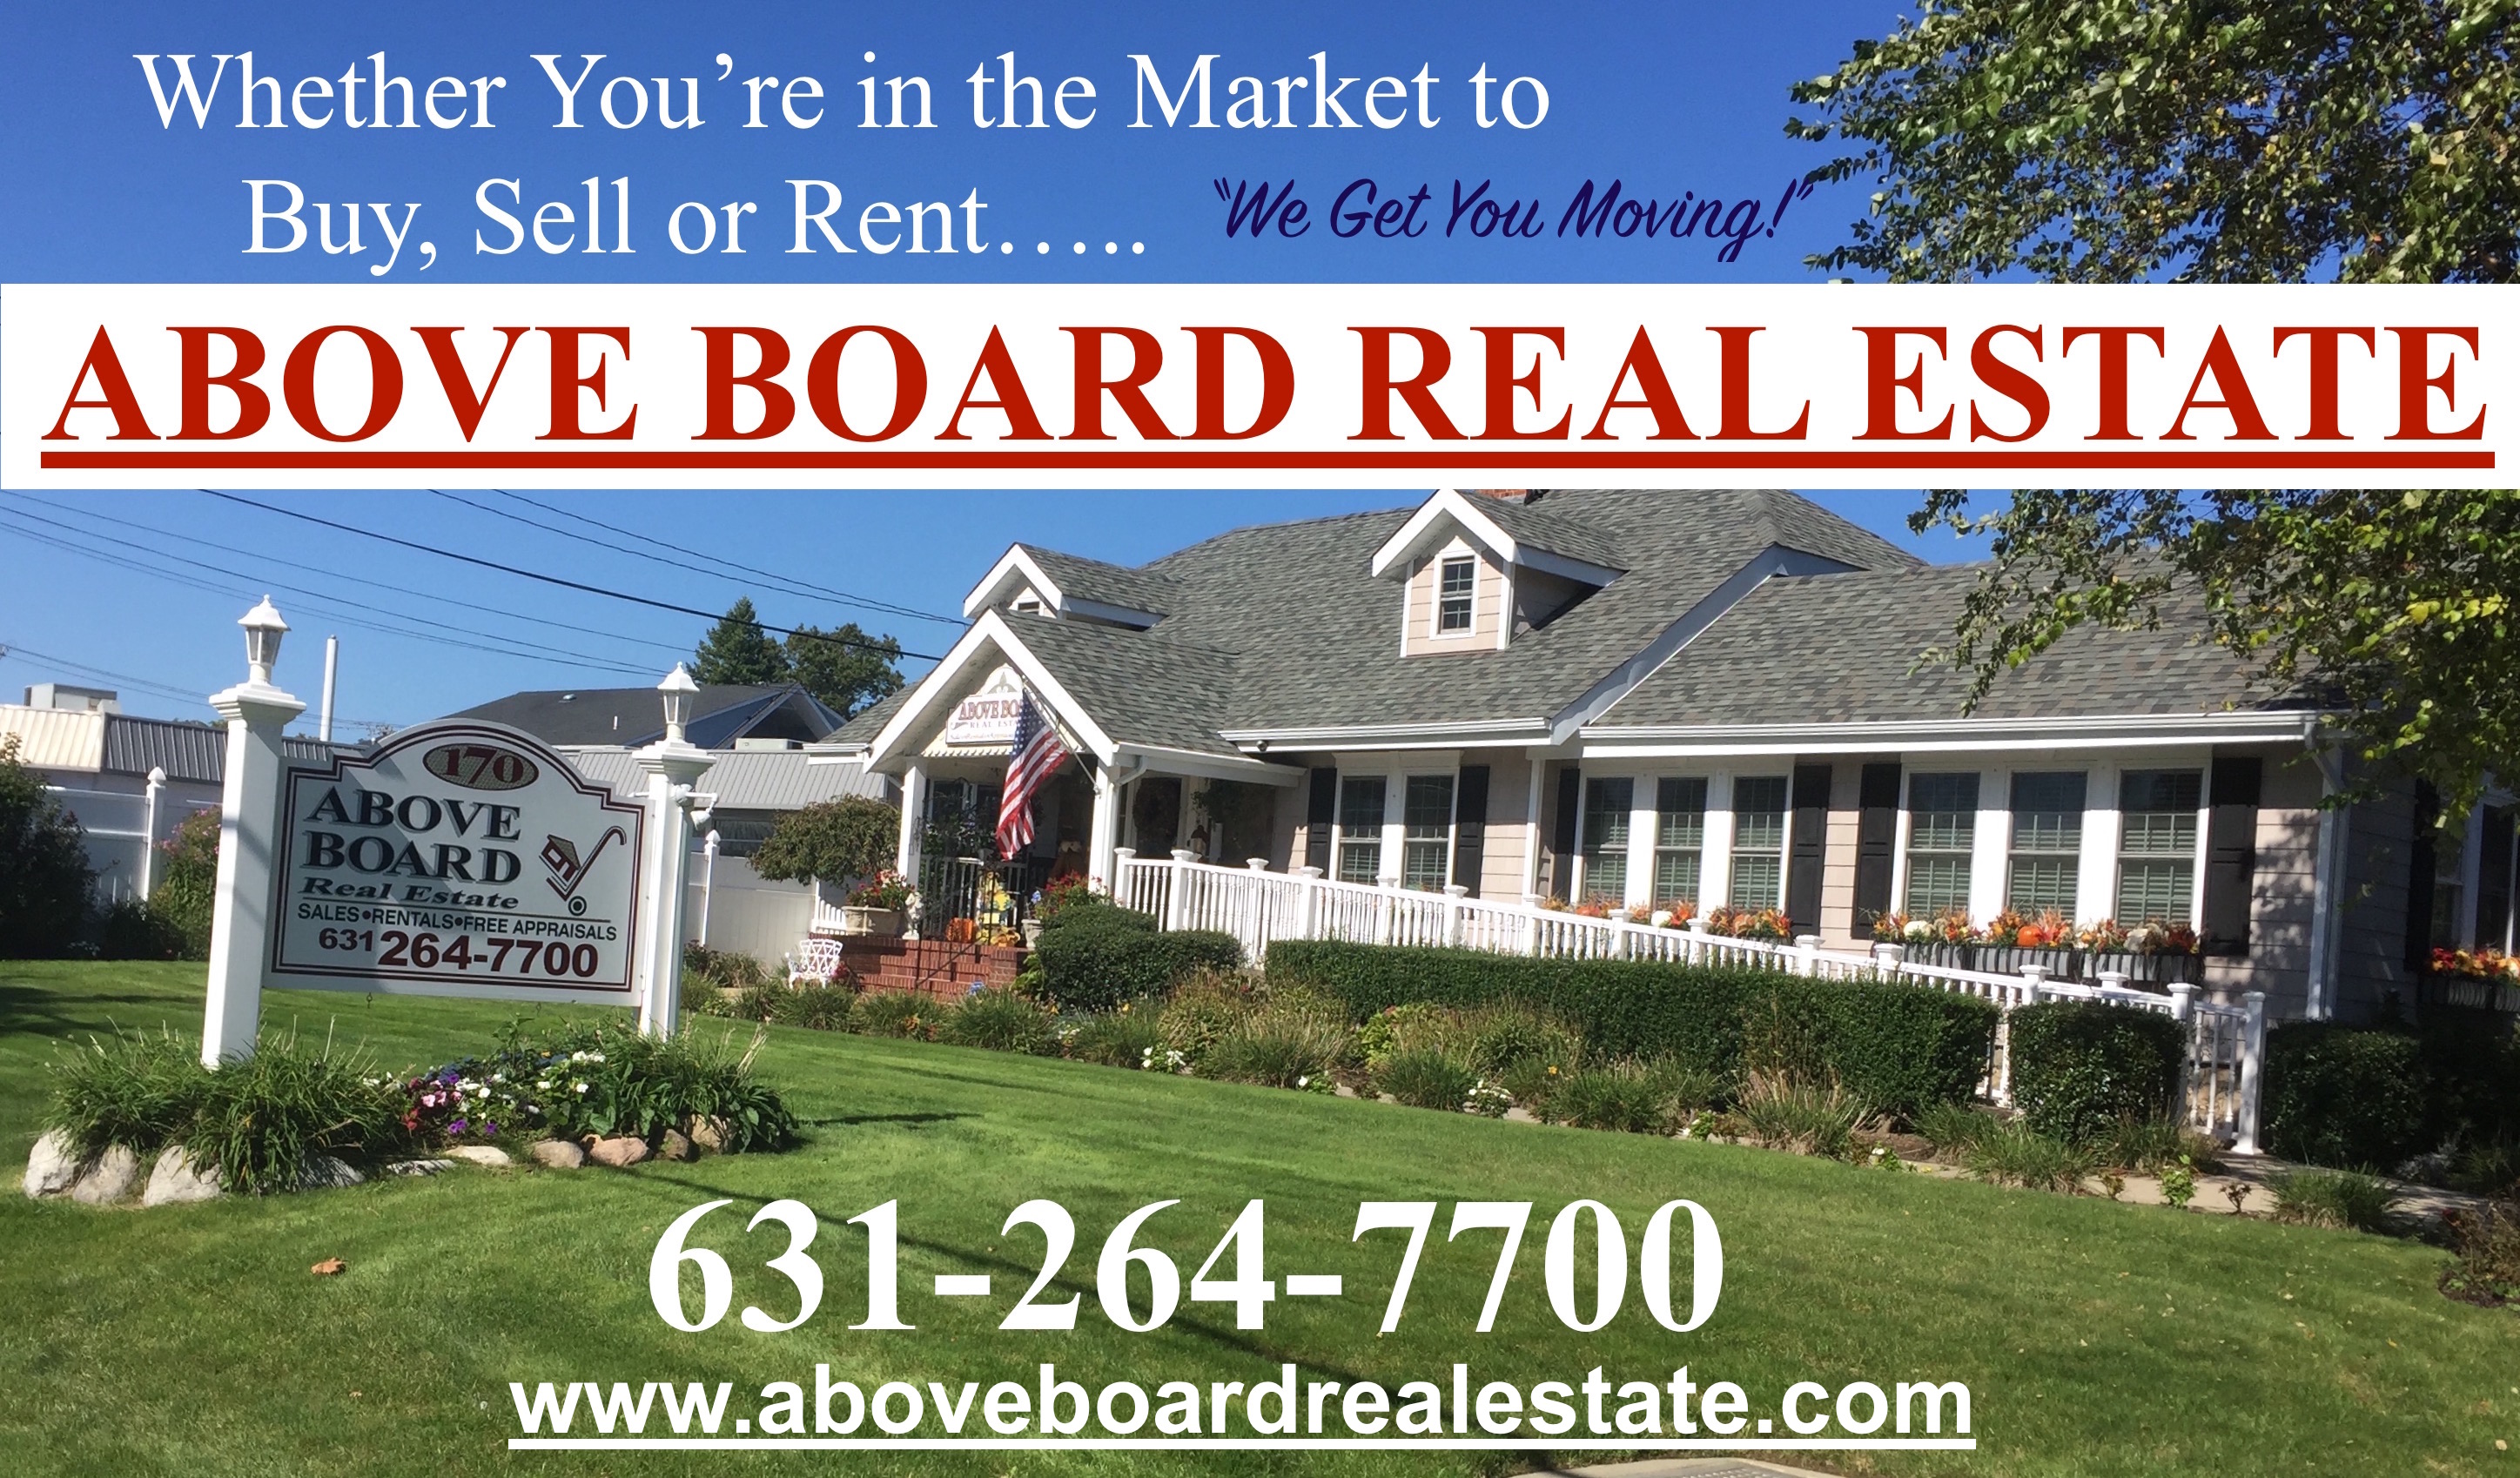 Above Board Real Estate reviews | Real Estate Agents at 170 Merrick Rd - Amityville NY